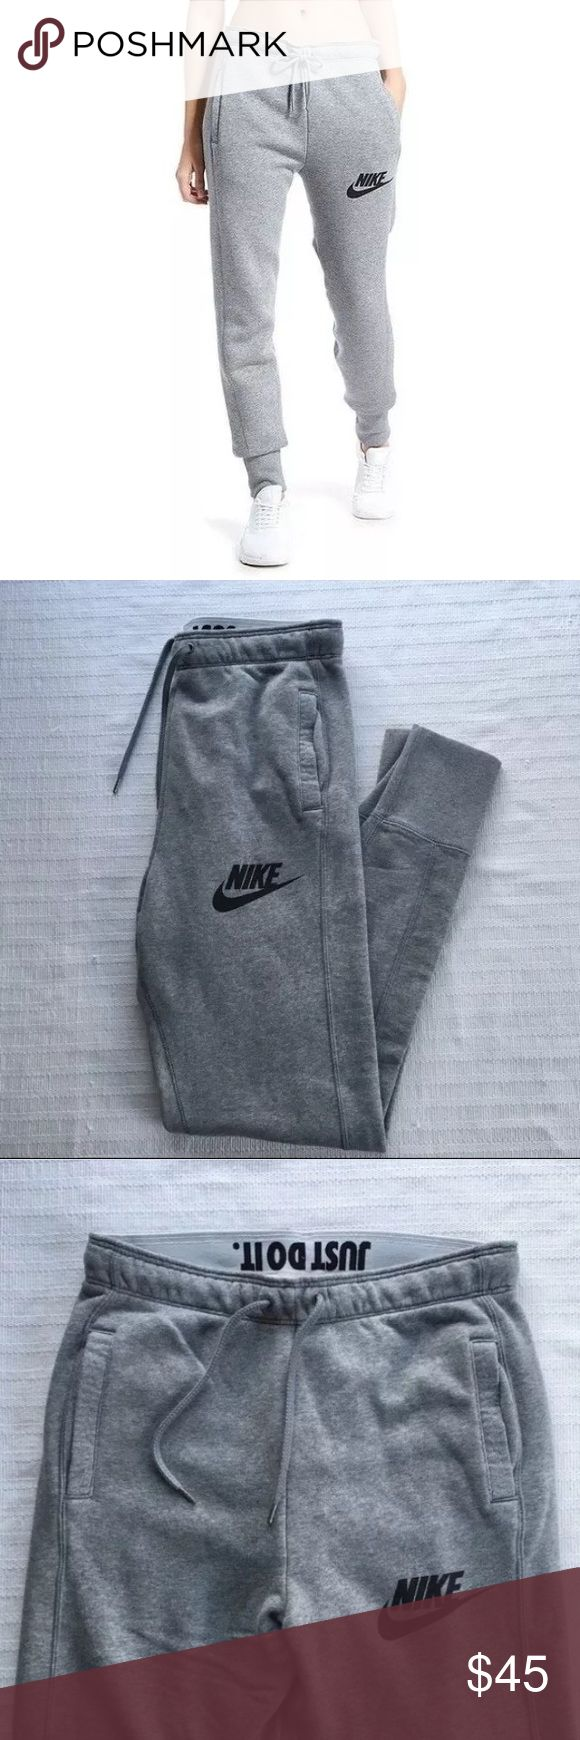 The Nike Rally Jogger Women's Sweatpants The Nike Rally Jogger Women's Sweatpants are made with a cozy cotton blend in a slim-fitting profile for warmth and a streamlined look. Style/Color: 718823-091  • Women's size Small  • NEW with tags • No trades •100% authentic Nike Pants Track Pants & Joggers